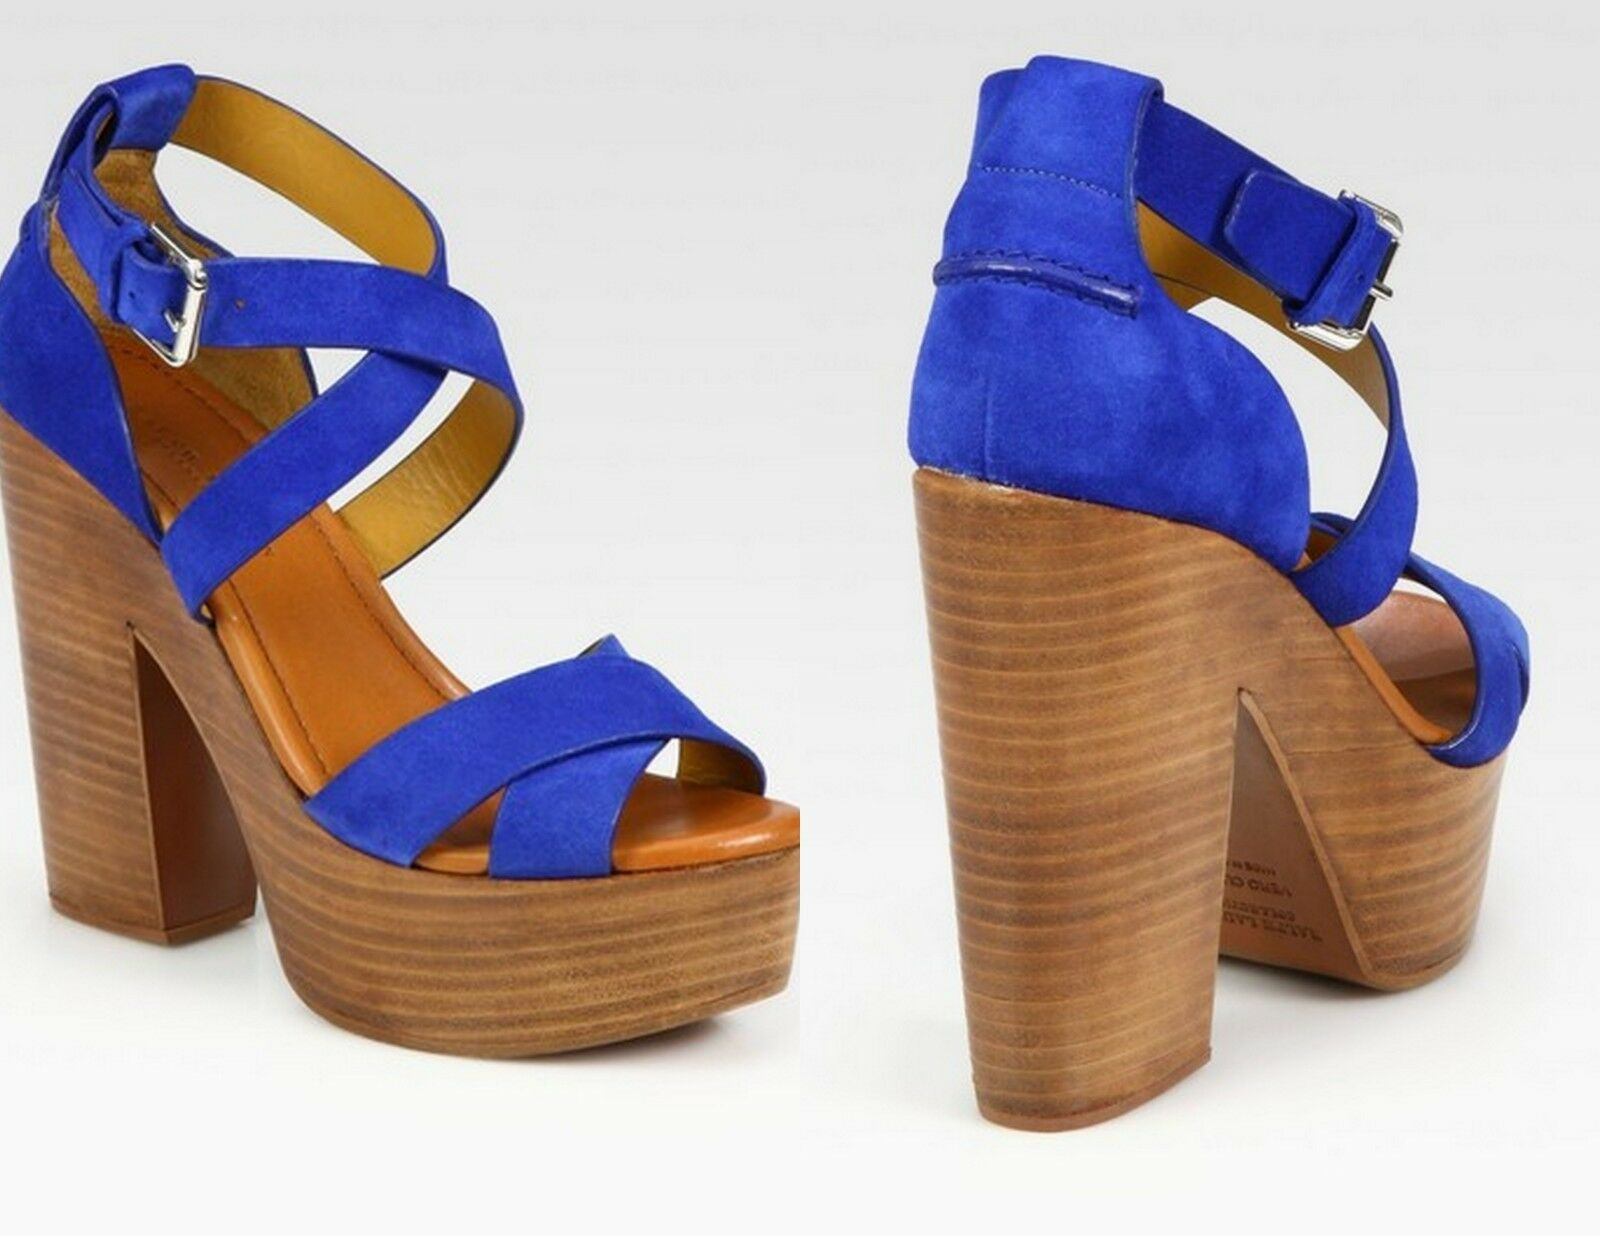 RALPH LAUREN COLLECTION ALANNAH blueE SUEDE WOOD PLATFORM WEDGE HEELS 6.5 4